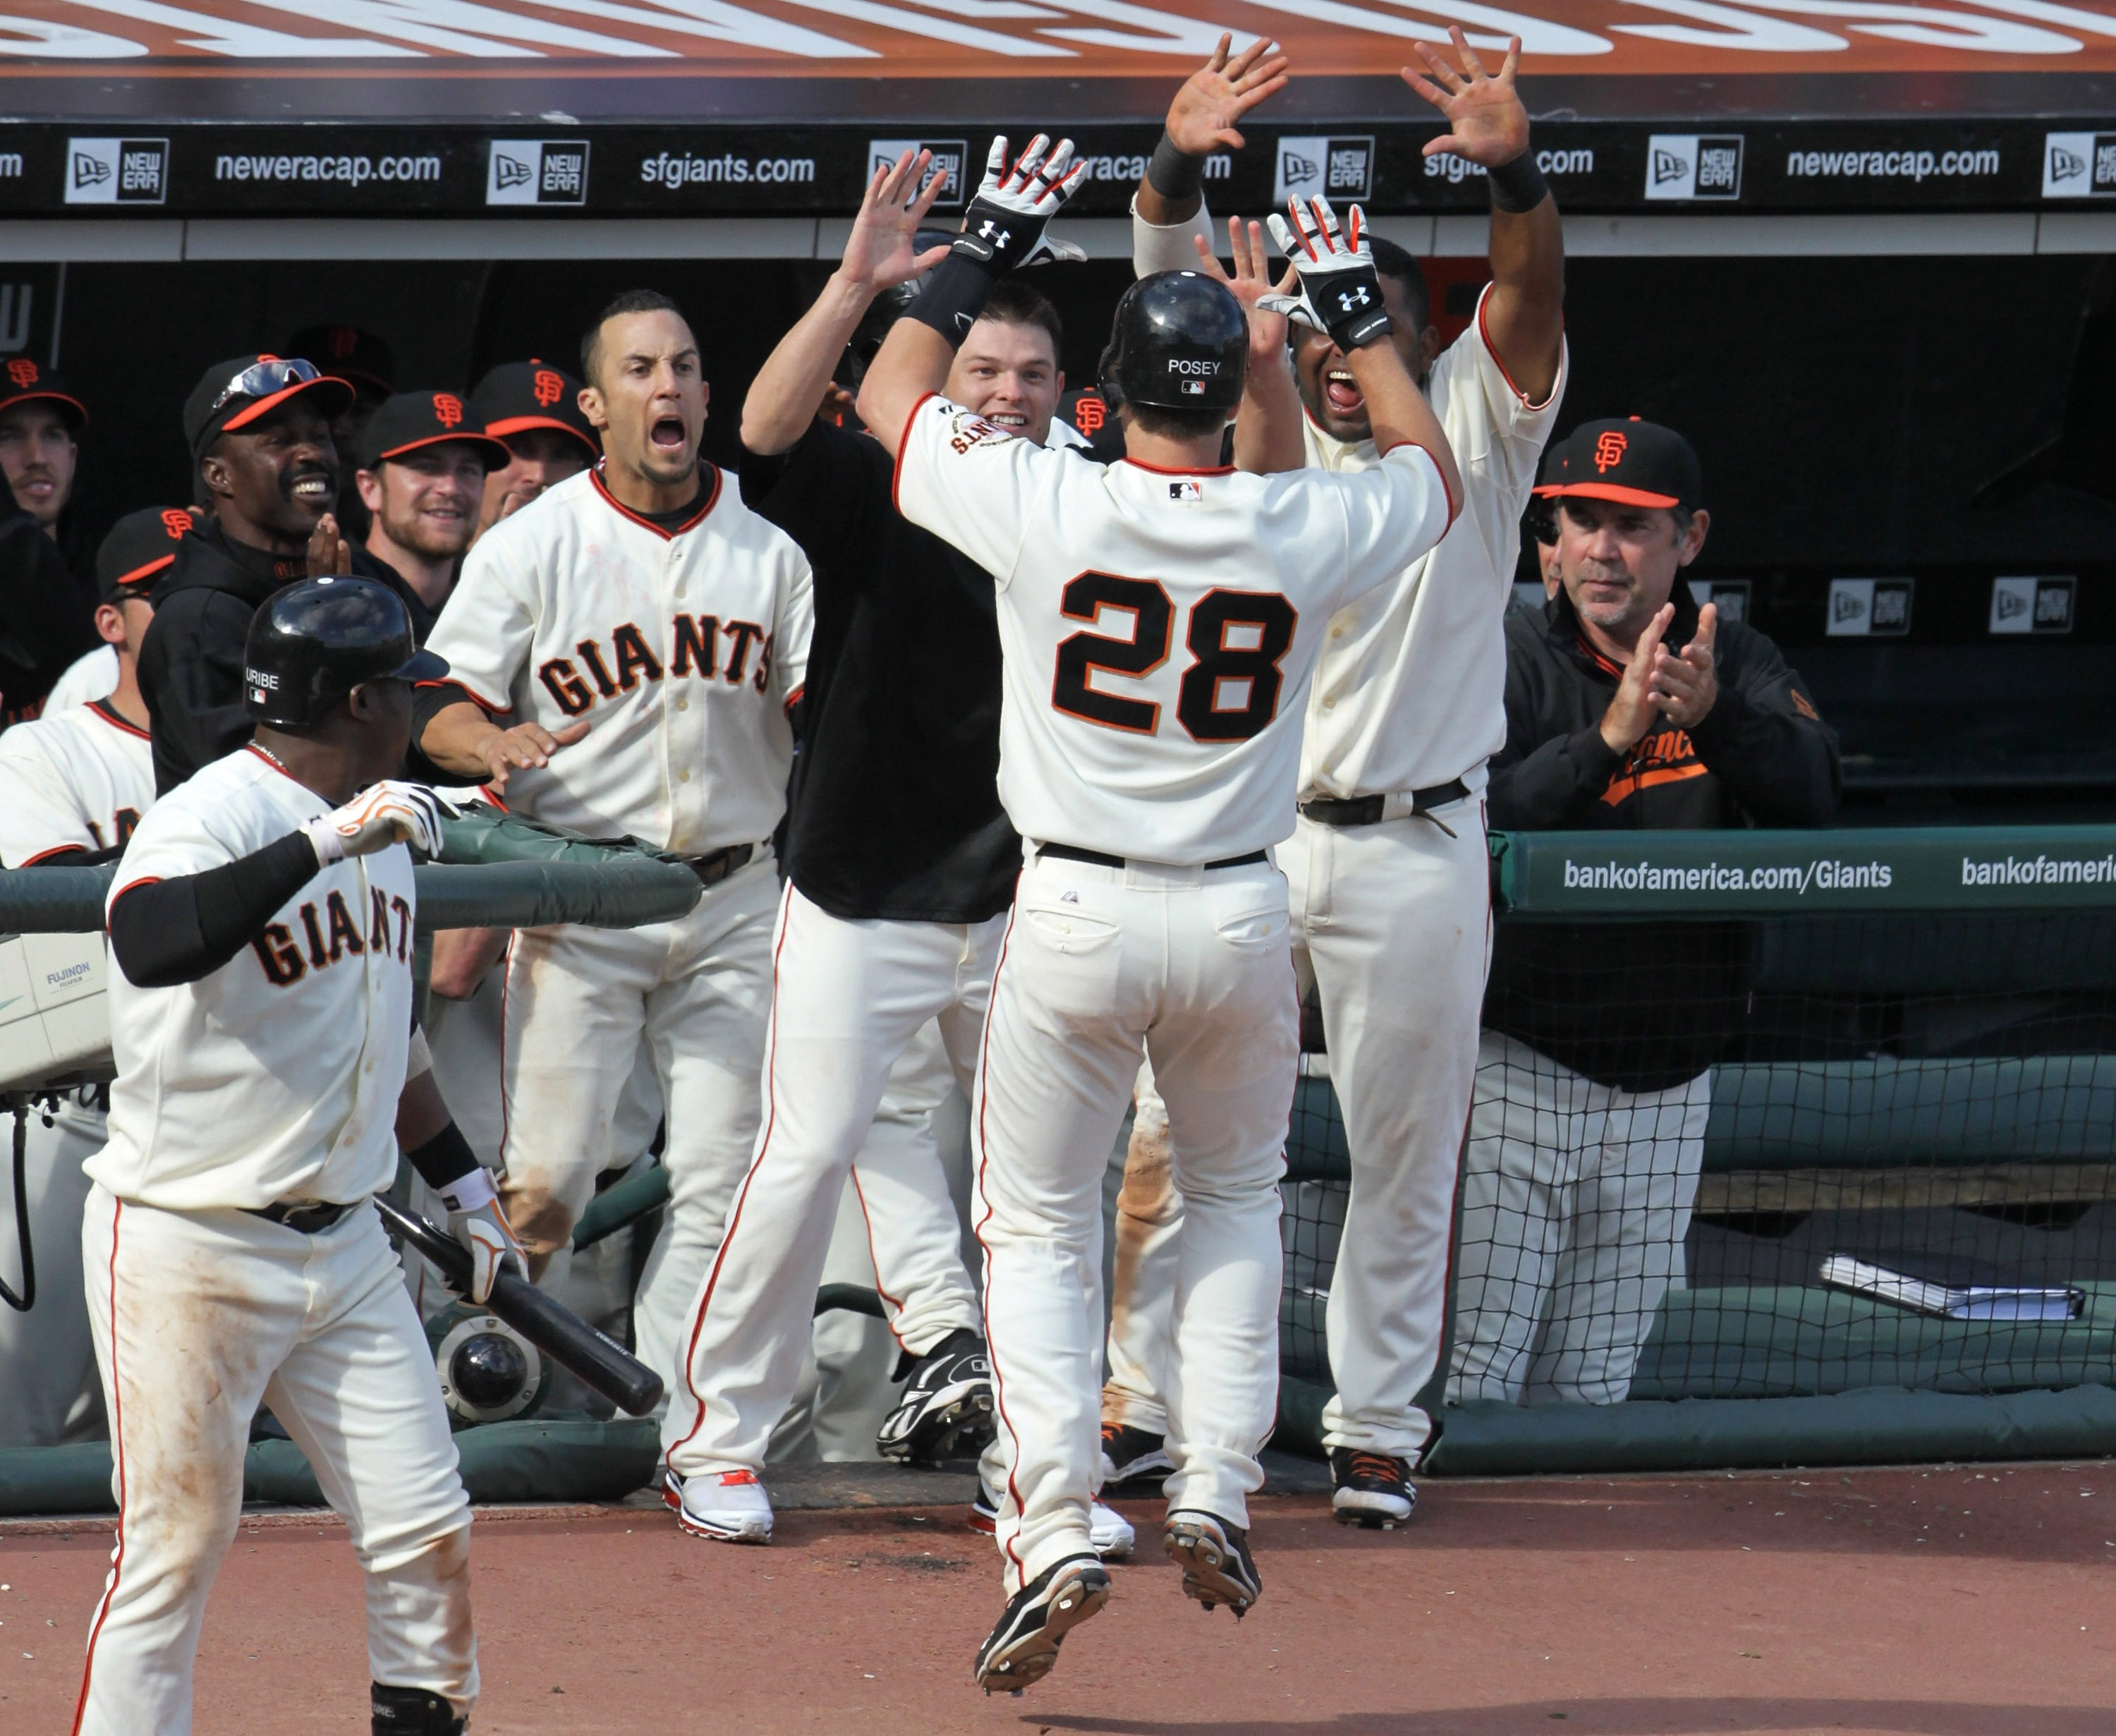 SAN FRANCISCO - OCTOBER 03:  Buster Posey #28 of the San Francisco Giants is congratulated by teammates after hitting a solo home run during the eighth inning against the San Diego Padres at AT&T Park on October 3, 2010 in San Francisco, California.  The